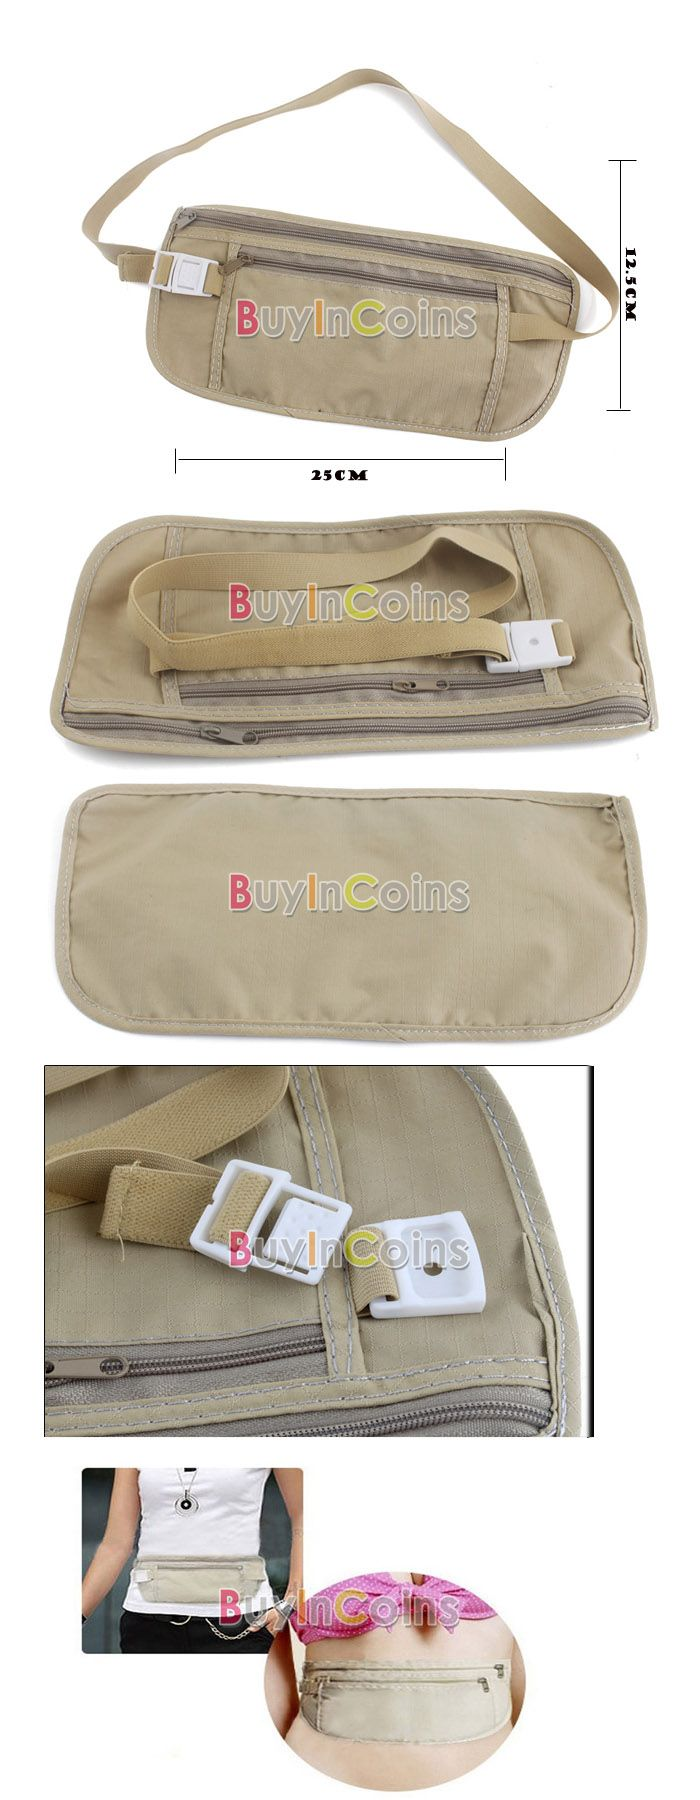 Travel Pouch Hidden Compact Security Money Waist Belt -- BuyinCoins.com